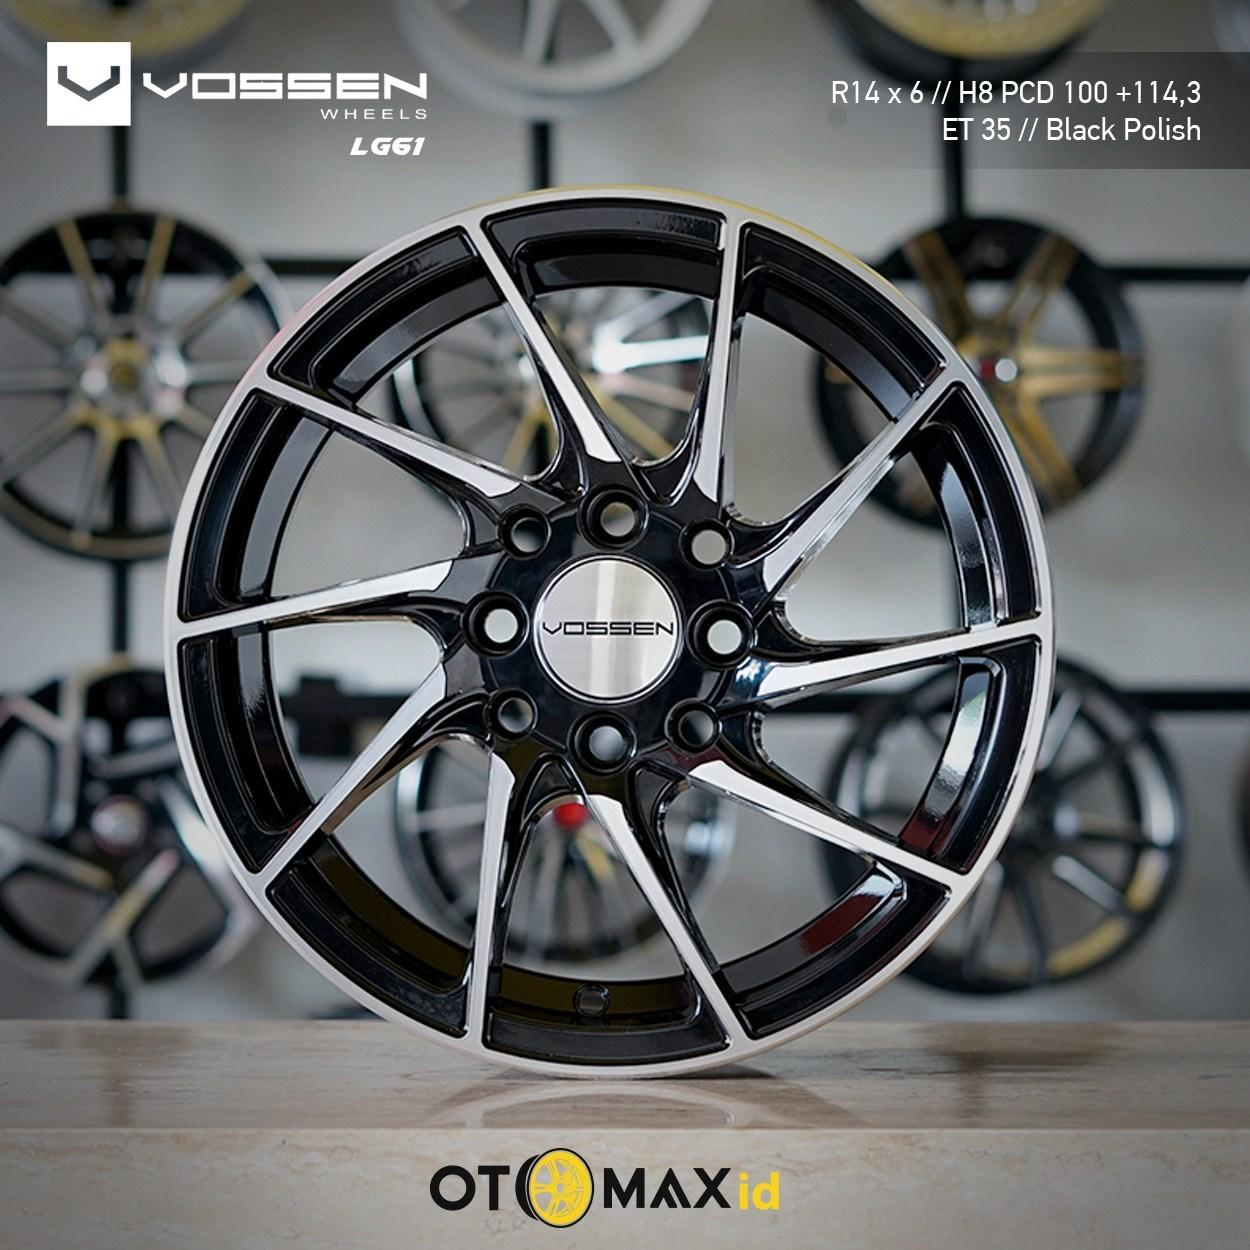 Velg Mobil Vossen LG61 Ring 14 Black Polish